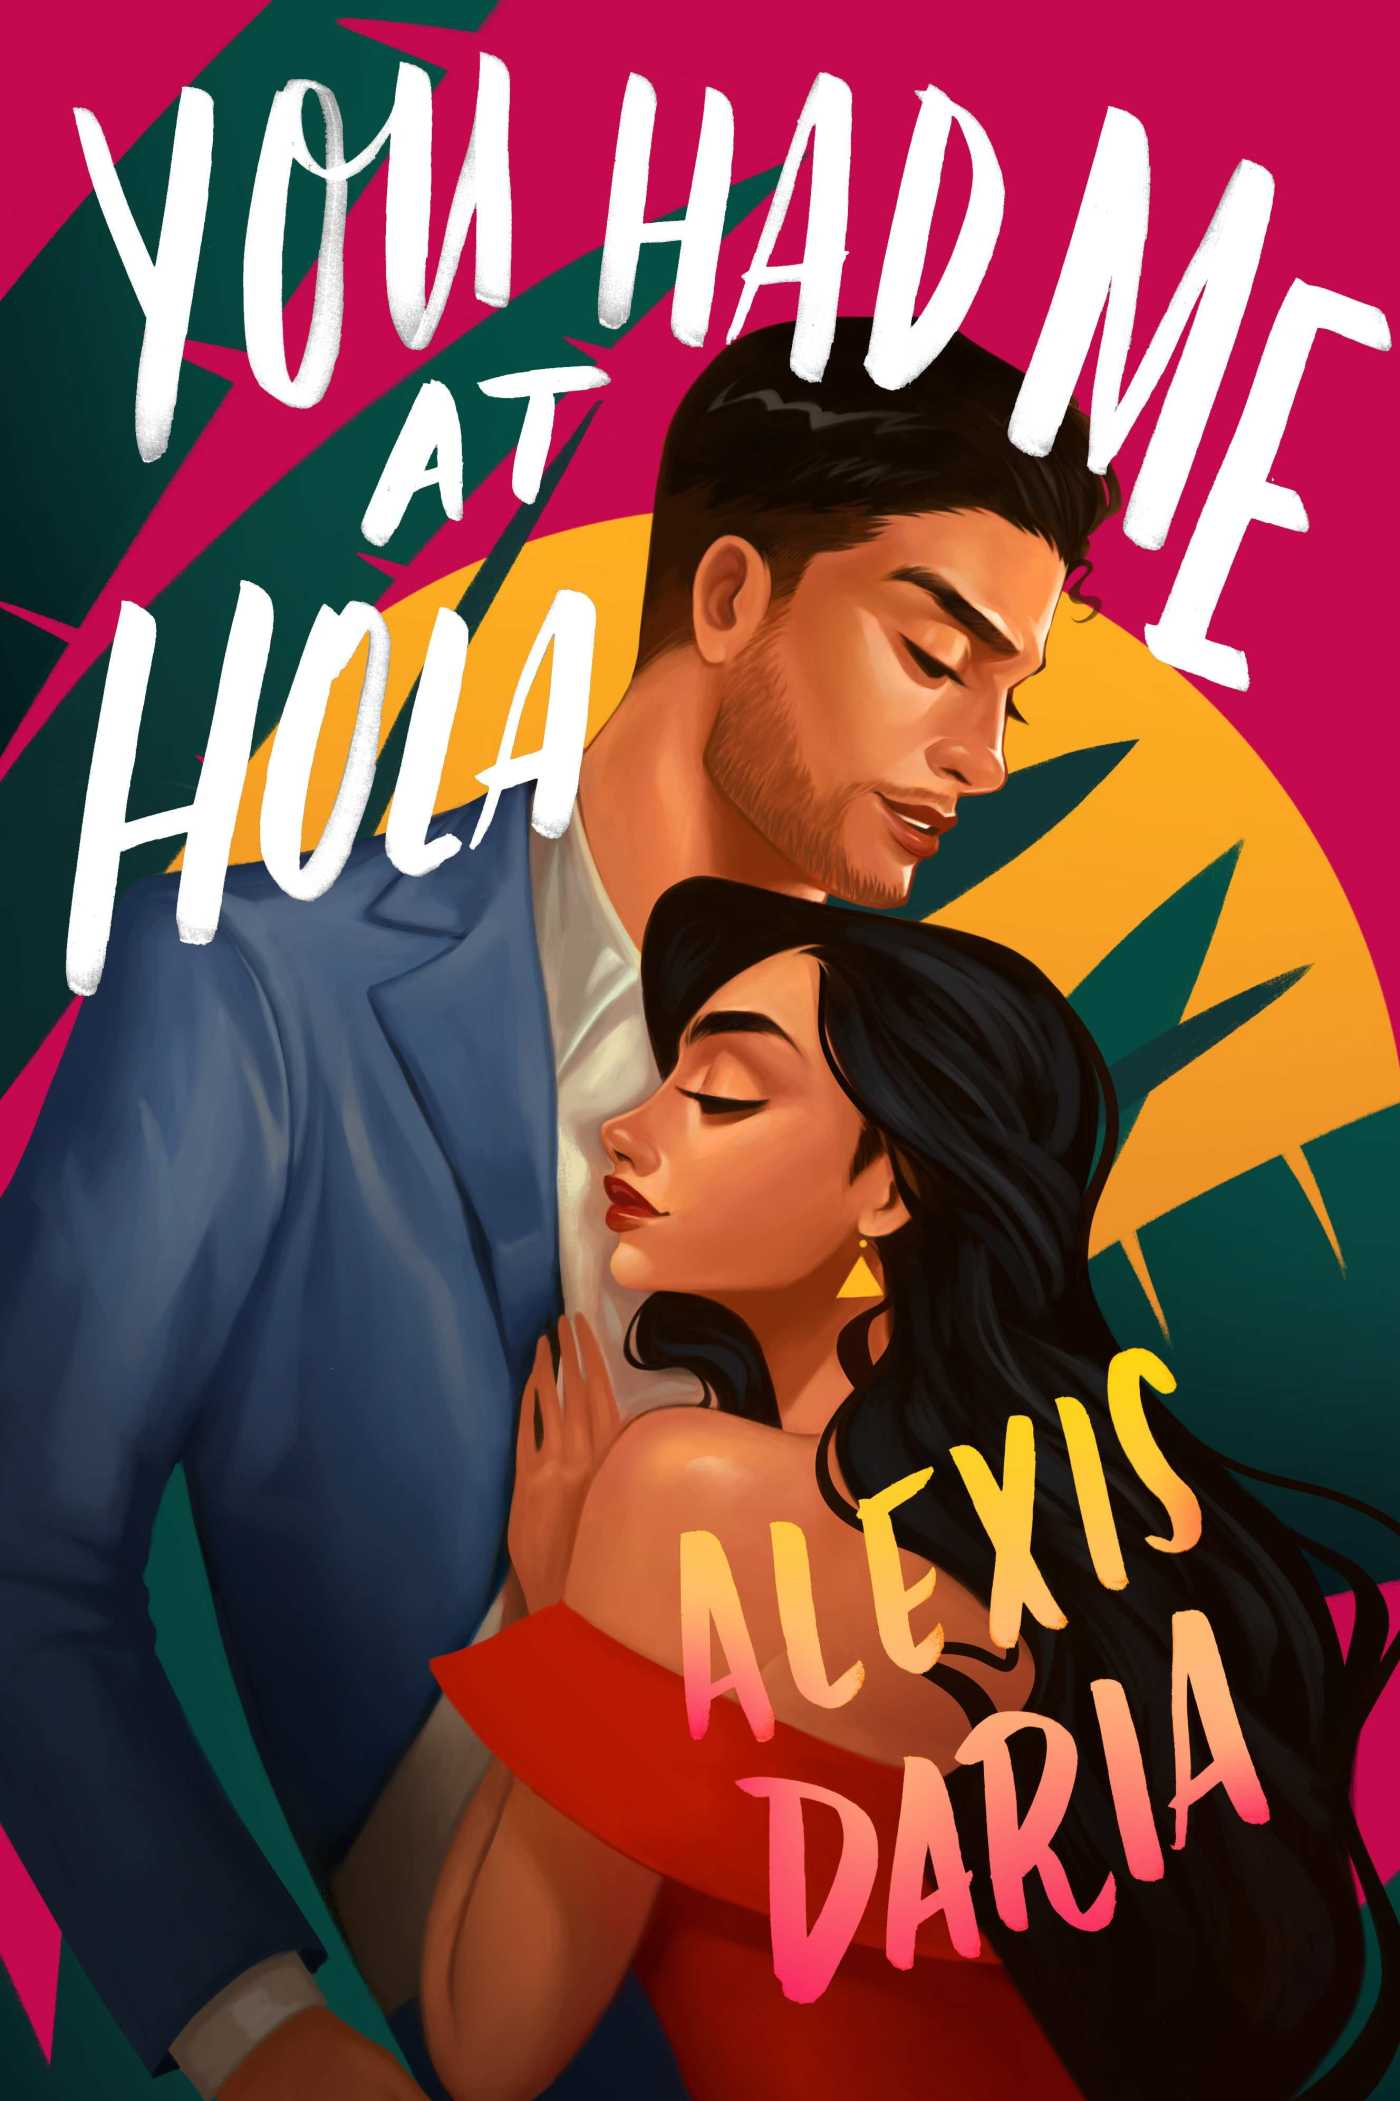 Alexis Daria - You Had Me at Hola